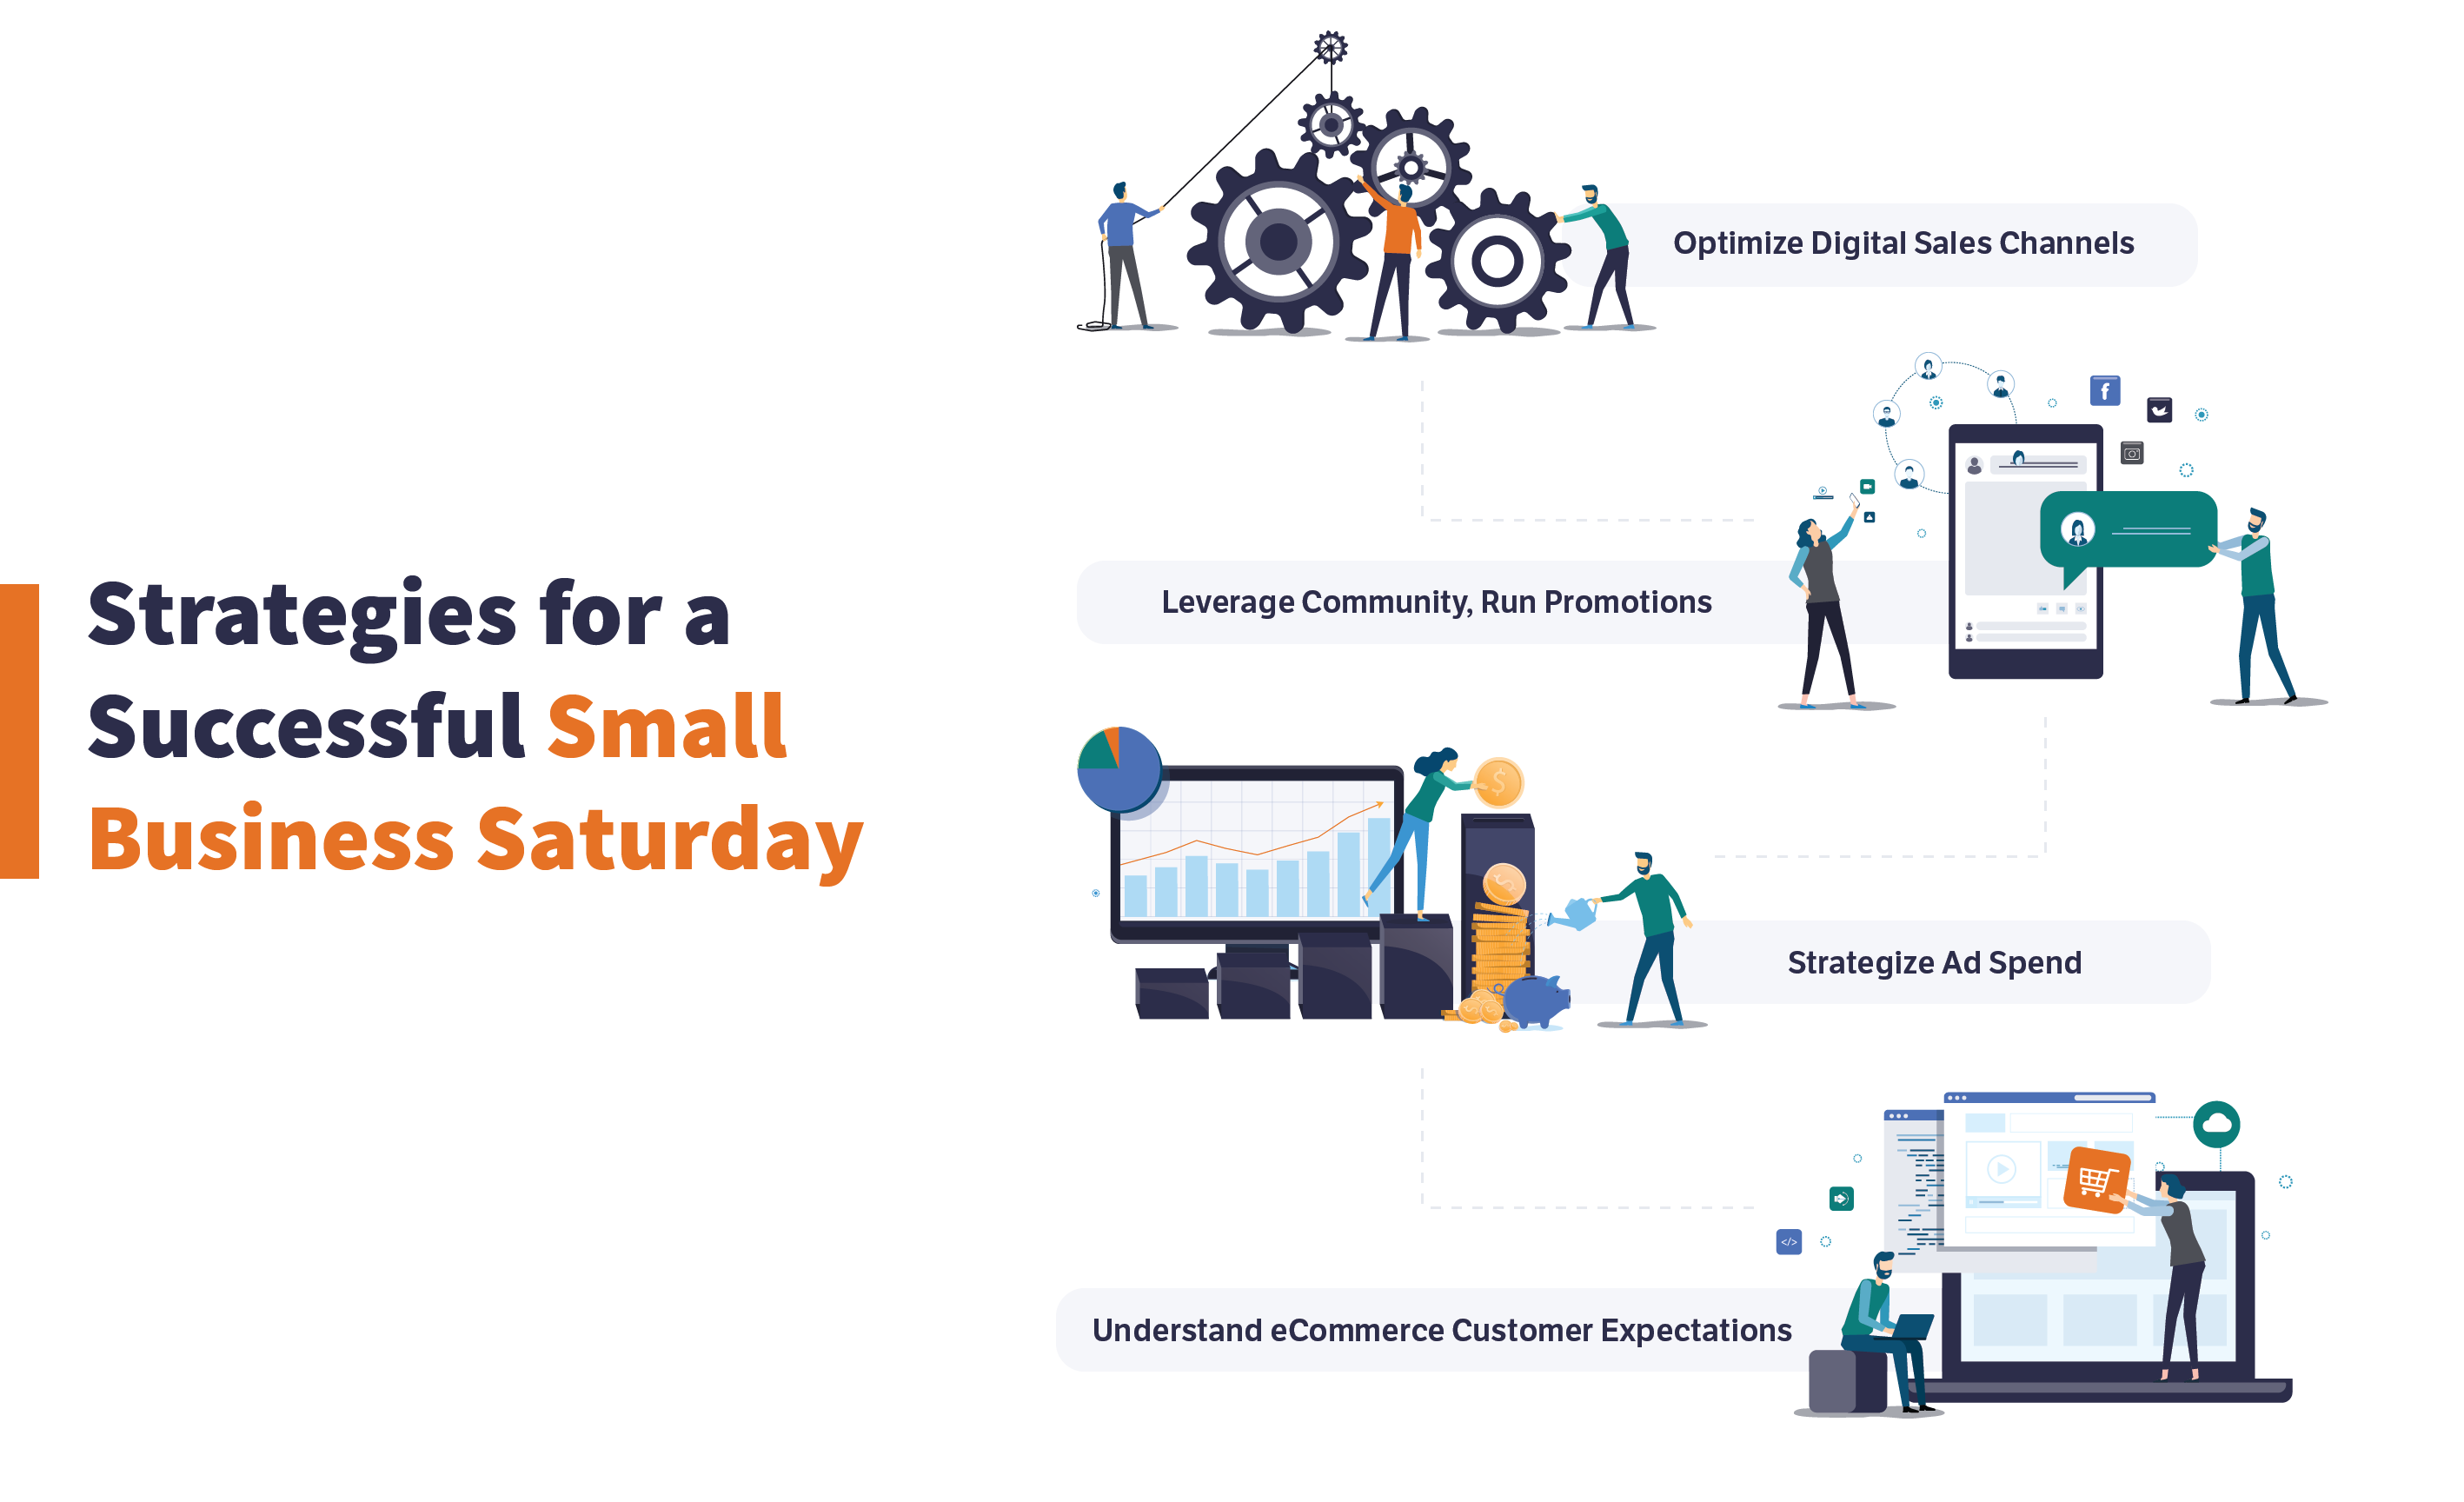 Optimize digital sales channels, leverage community, strategize ad spend, understand ecommerce expectaions